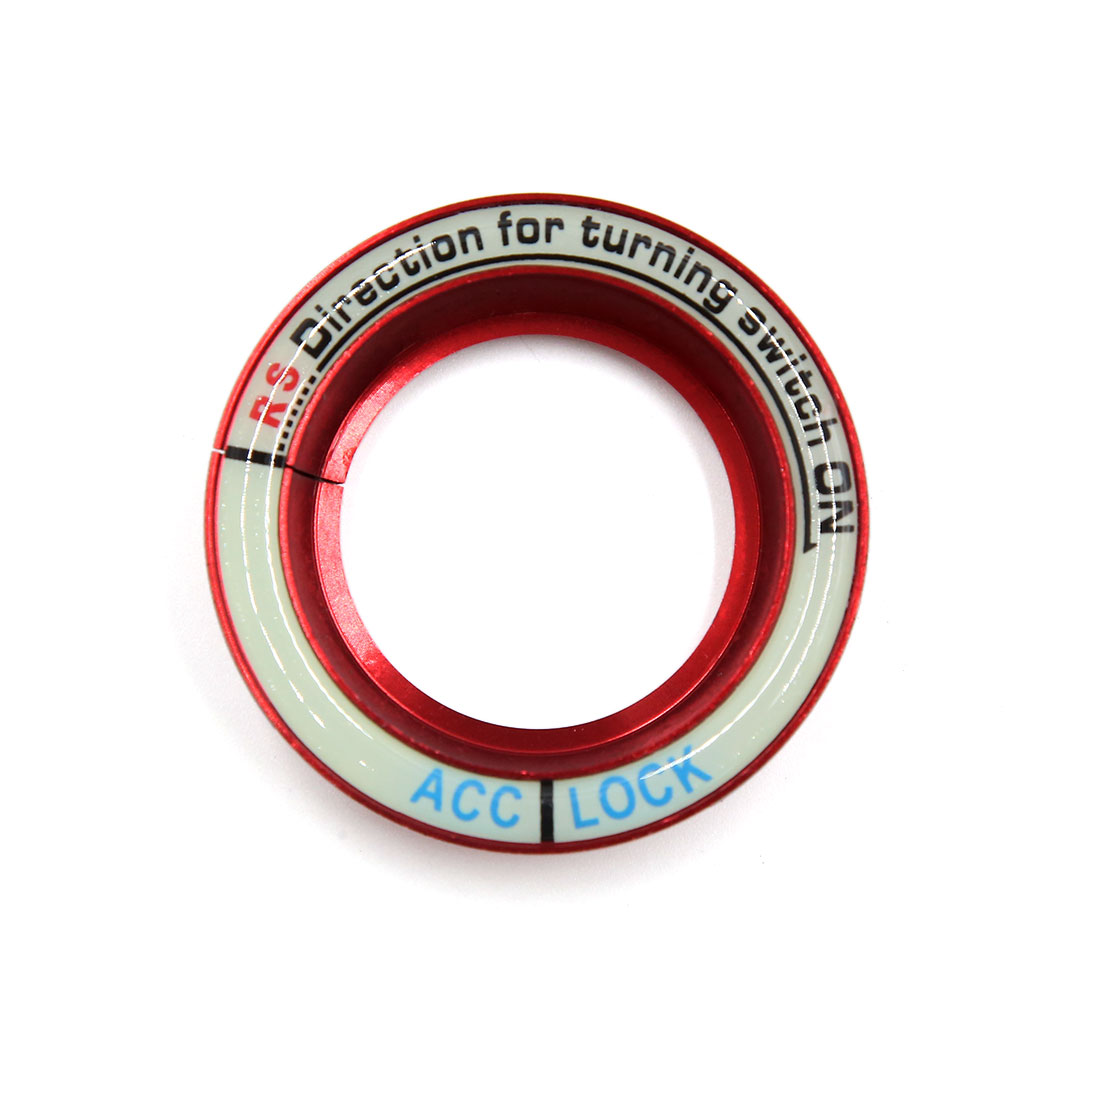 Red 52mm Dia Luminous Car Ignition Engine Start Stop Switch Button Decorative Ring for Skoda